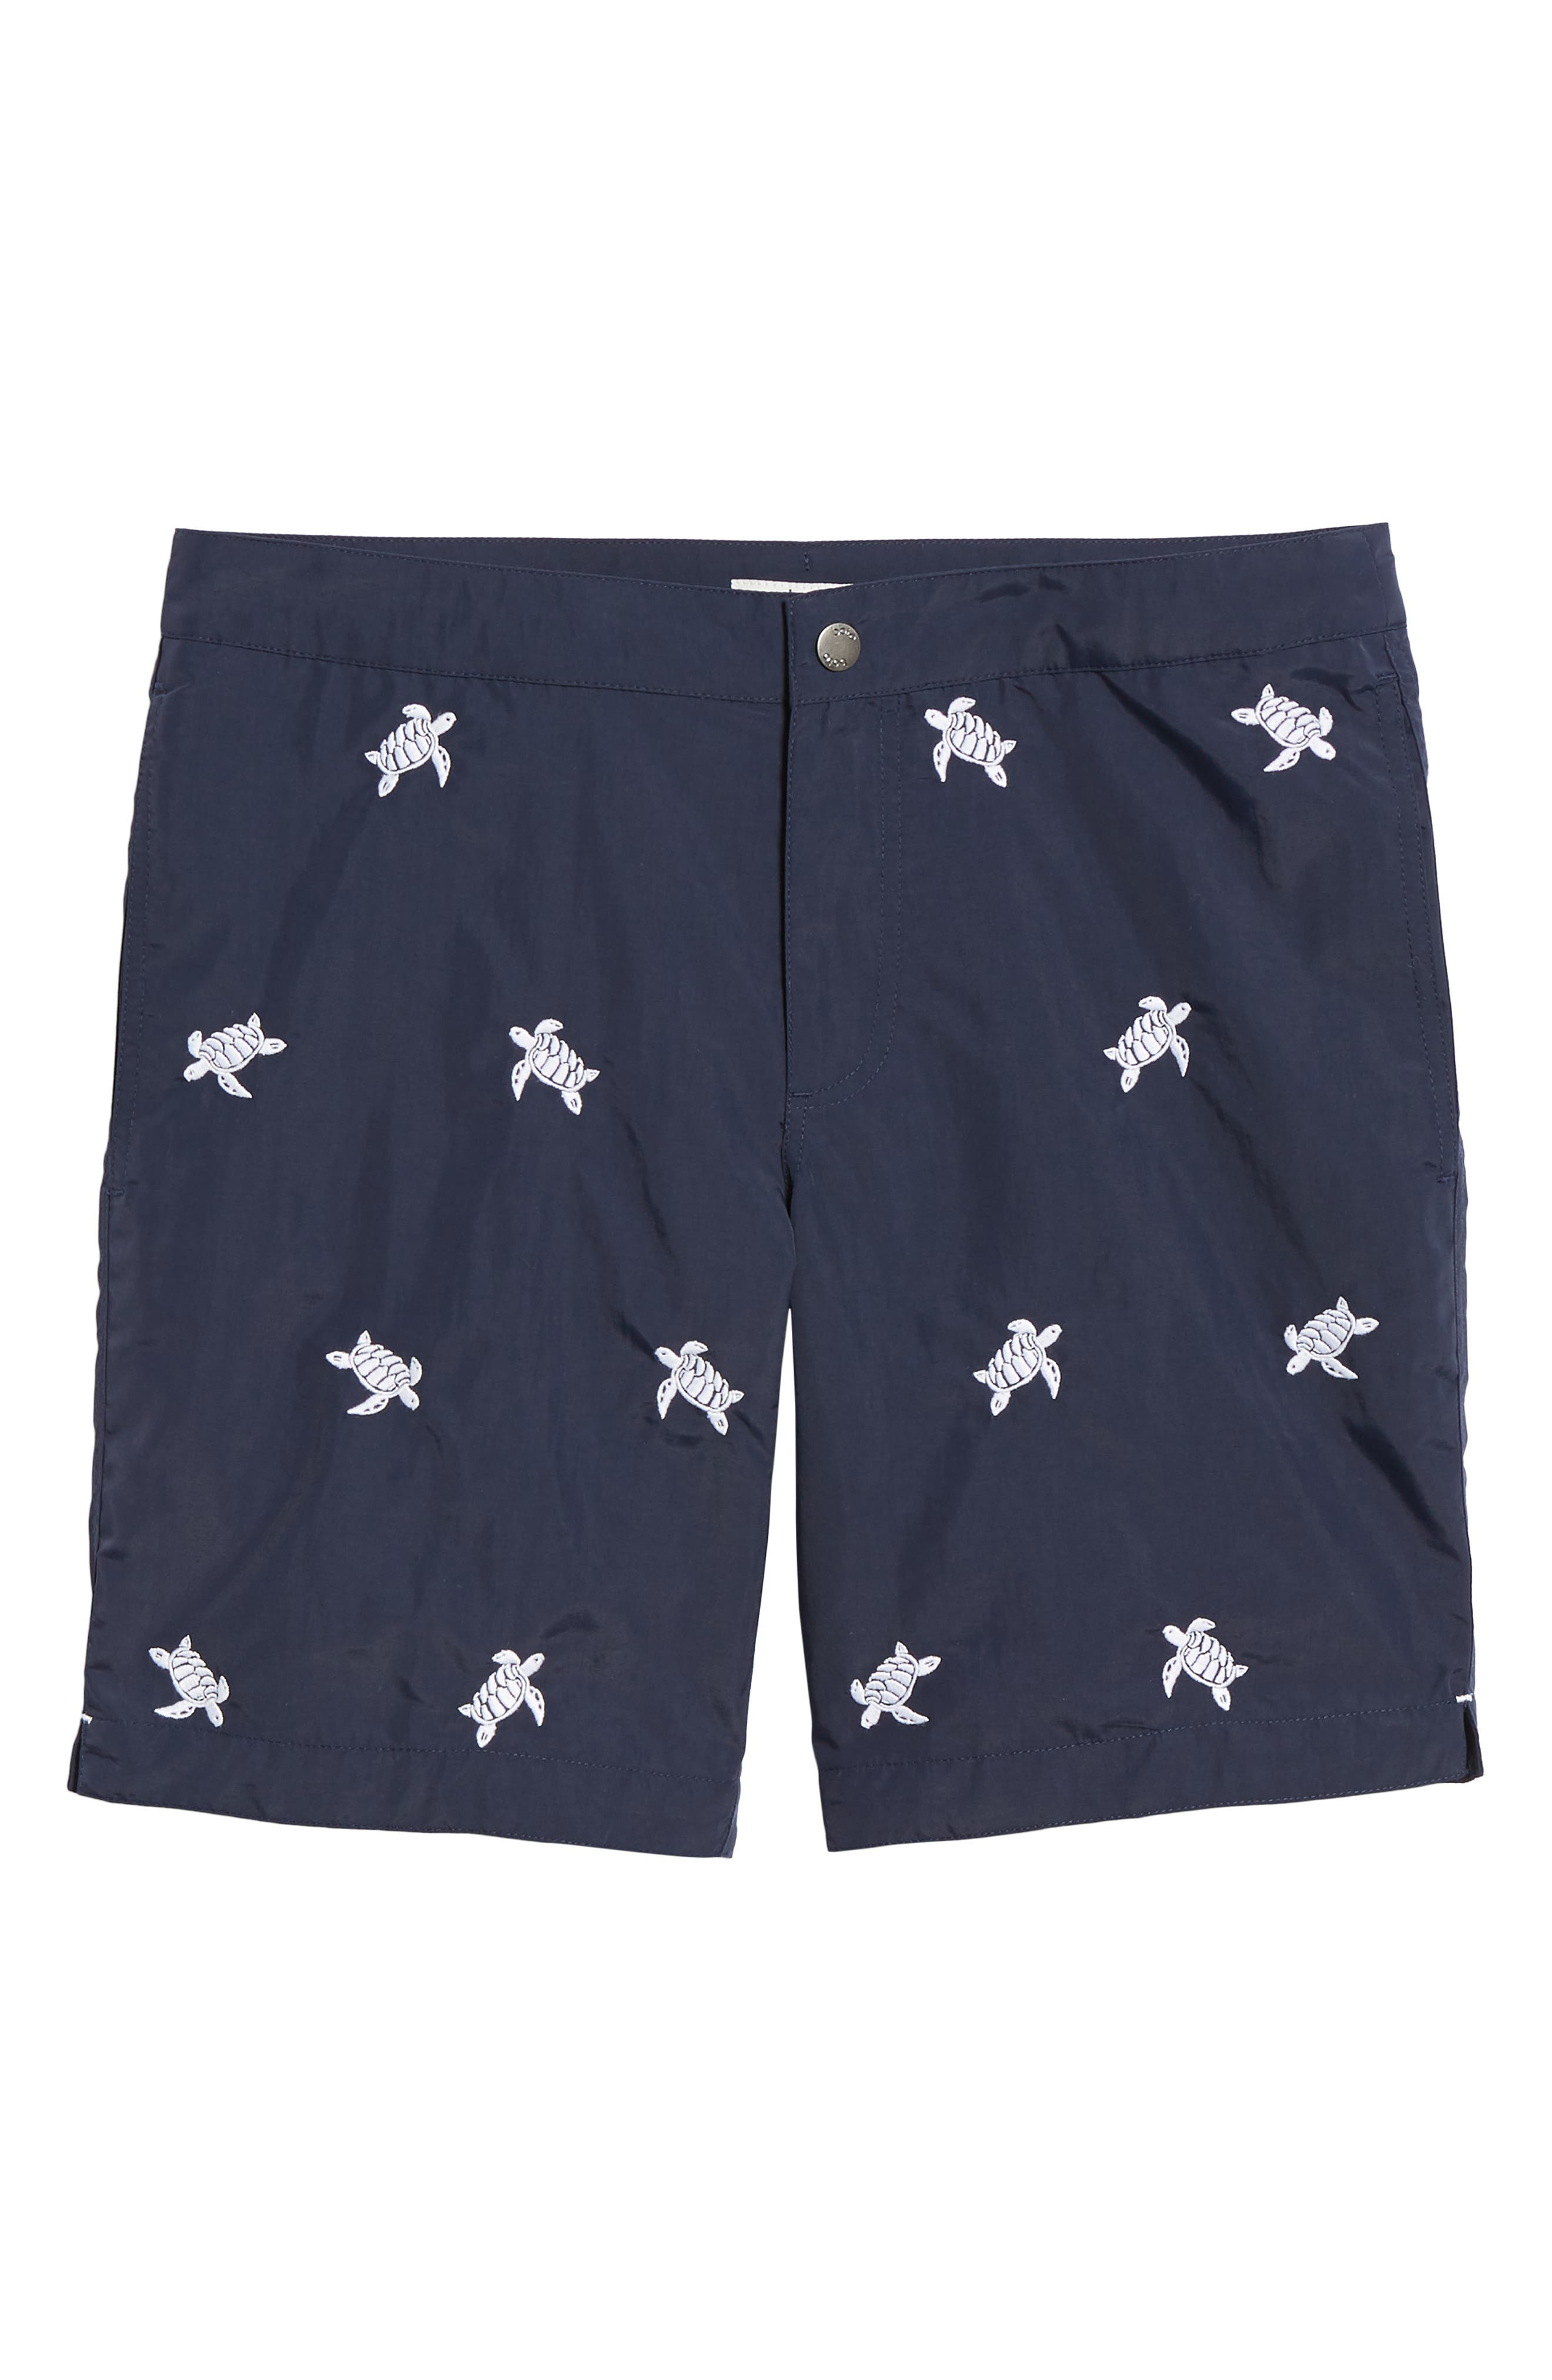 Aruba Embroidered 8.5 Inch Swim Trunks,                             Alternate thumbnail 6, color,                             NAVY EMBROIDERED TURTLES